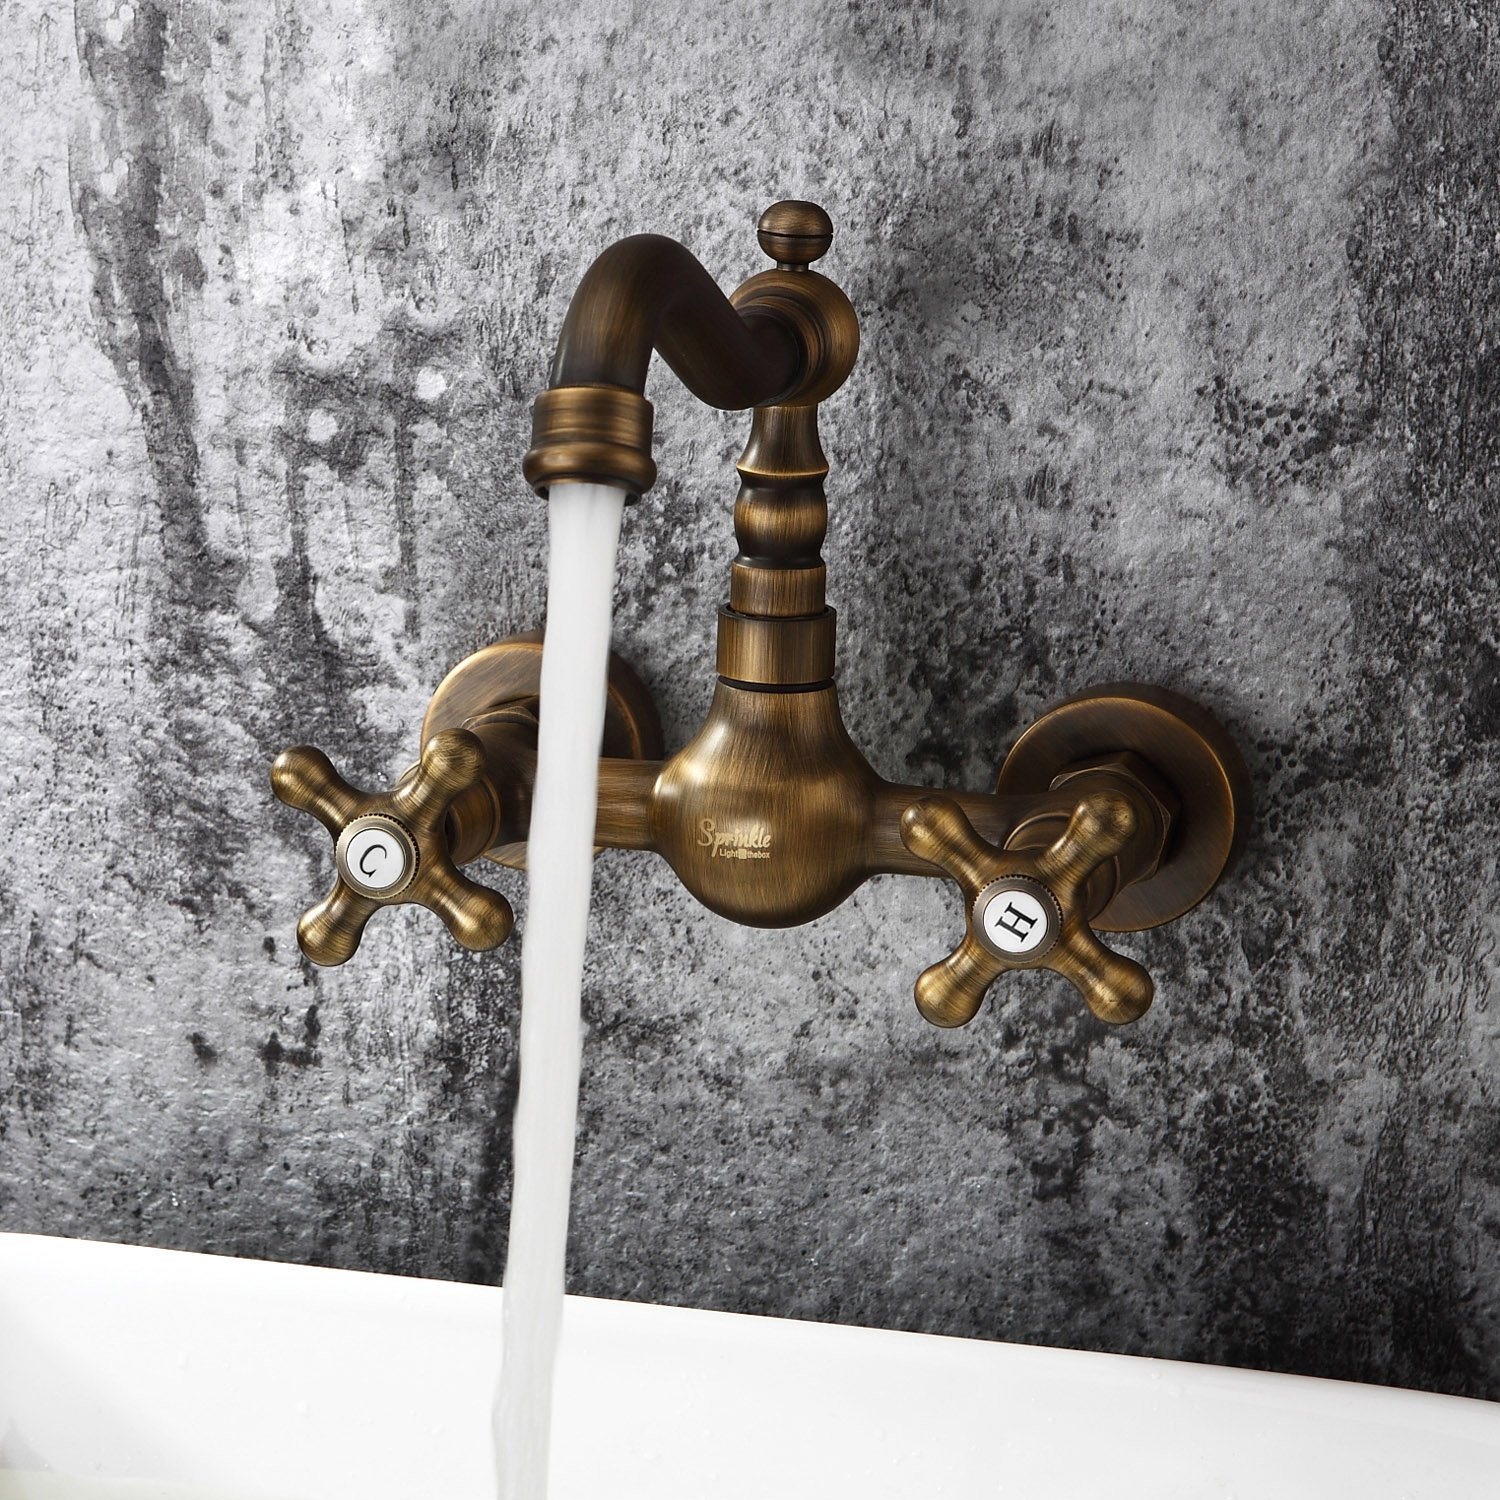 Sprinkle - Antique inspired Bathroom Sink Faucet - Wall Mount (Antique Brass Finish)